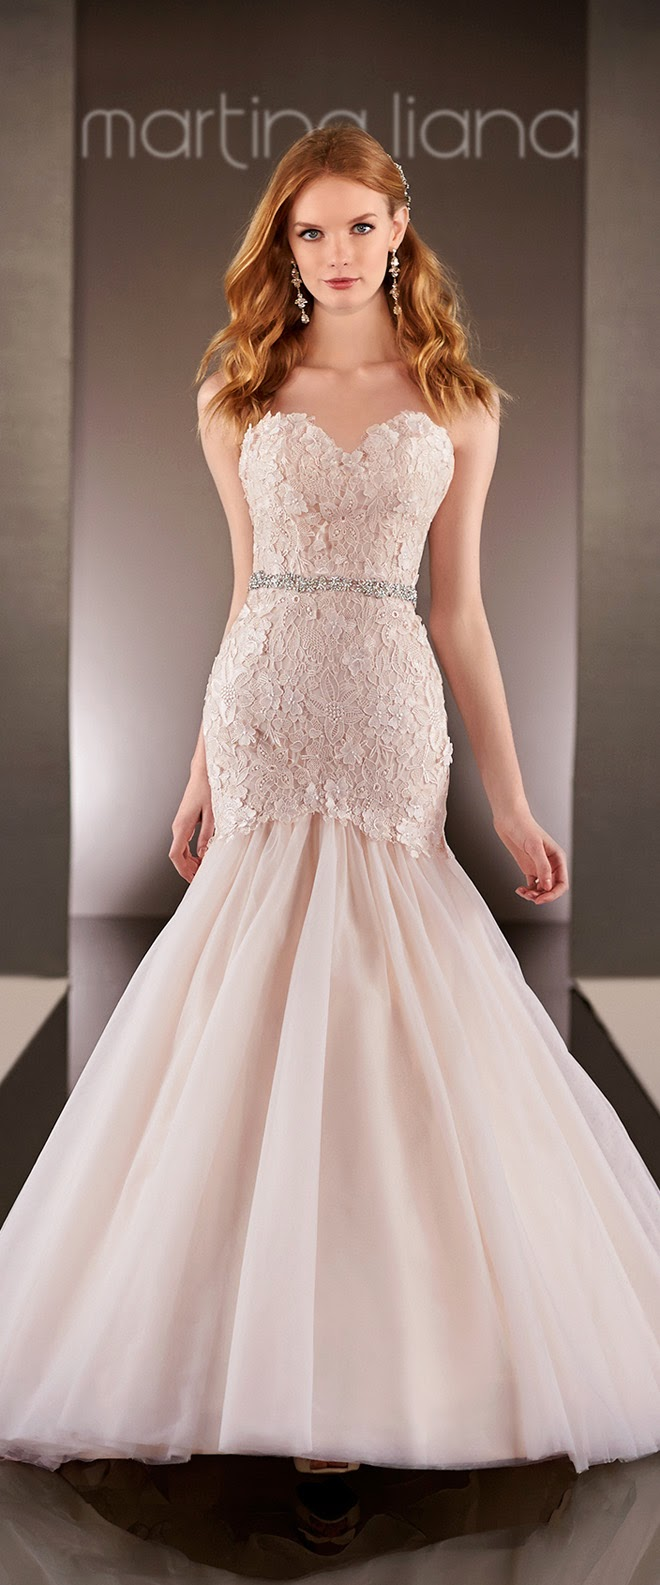 Martina liana spring 2015 bridal collection belle the for Wedding dresses in michigan